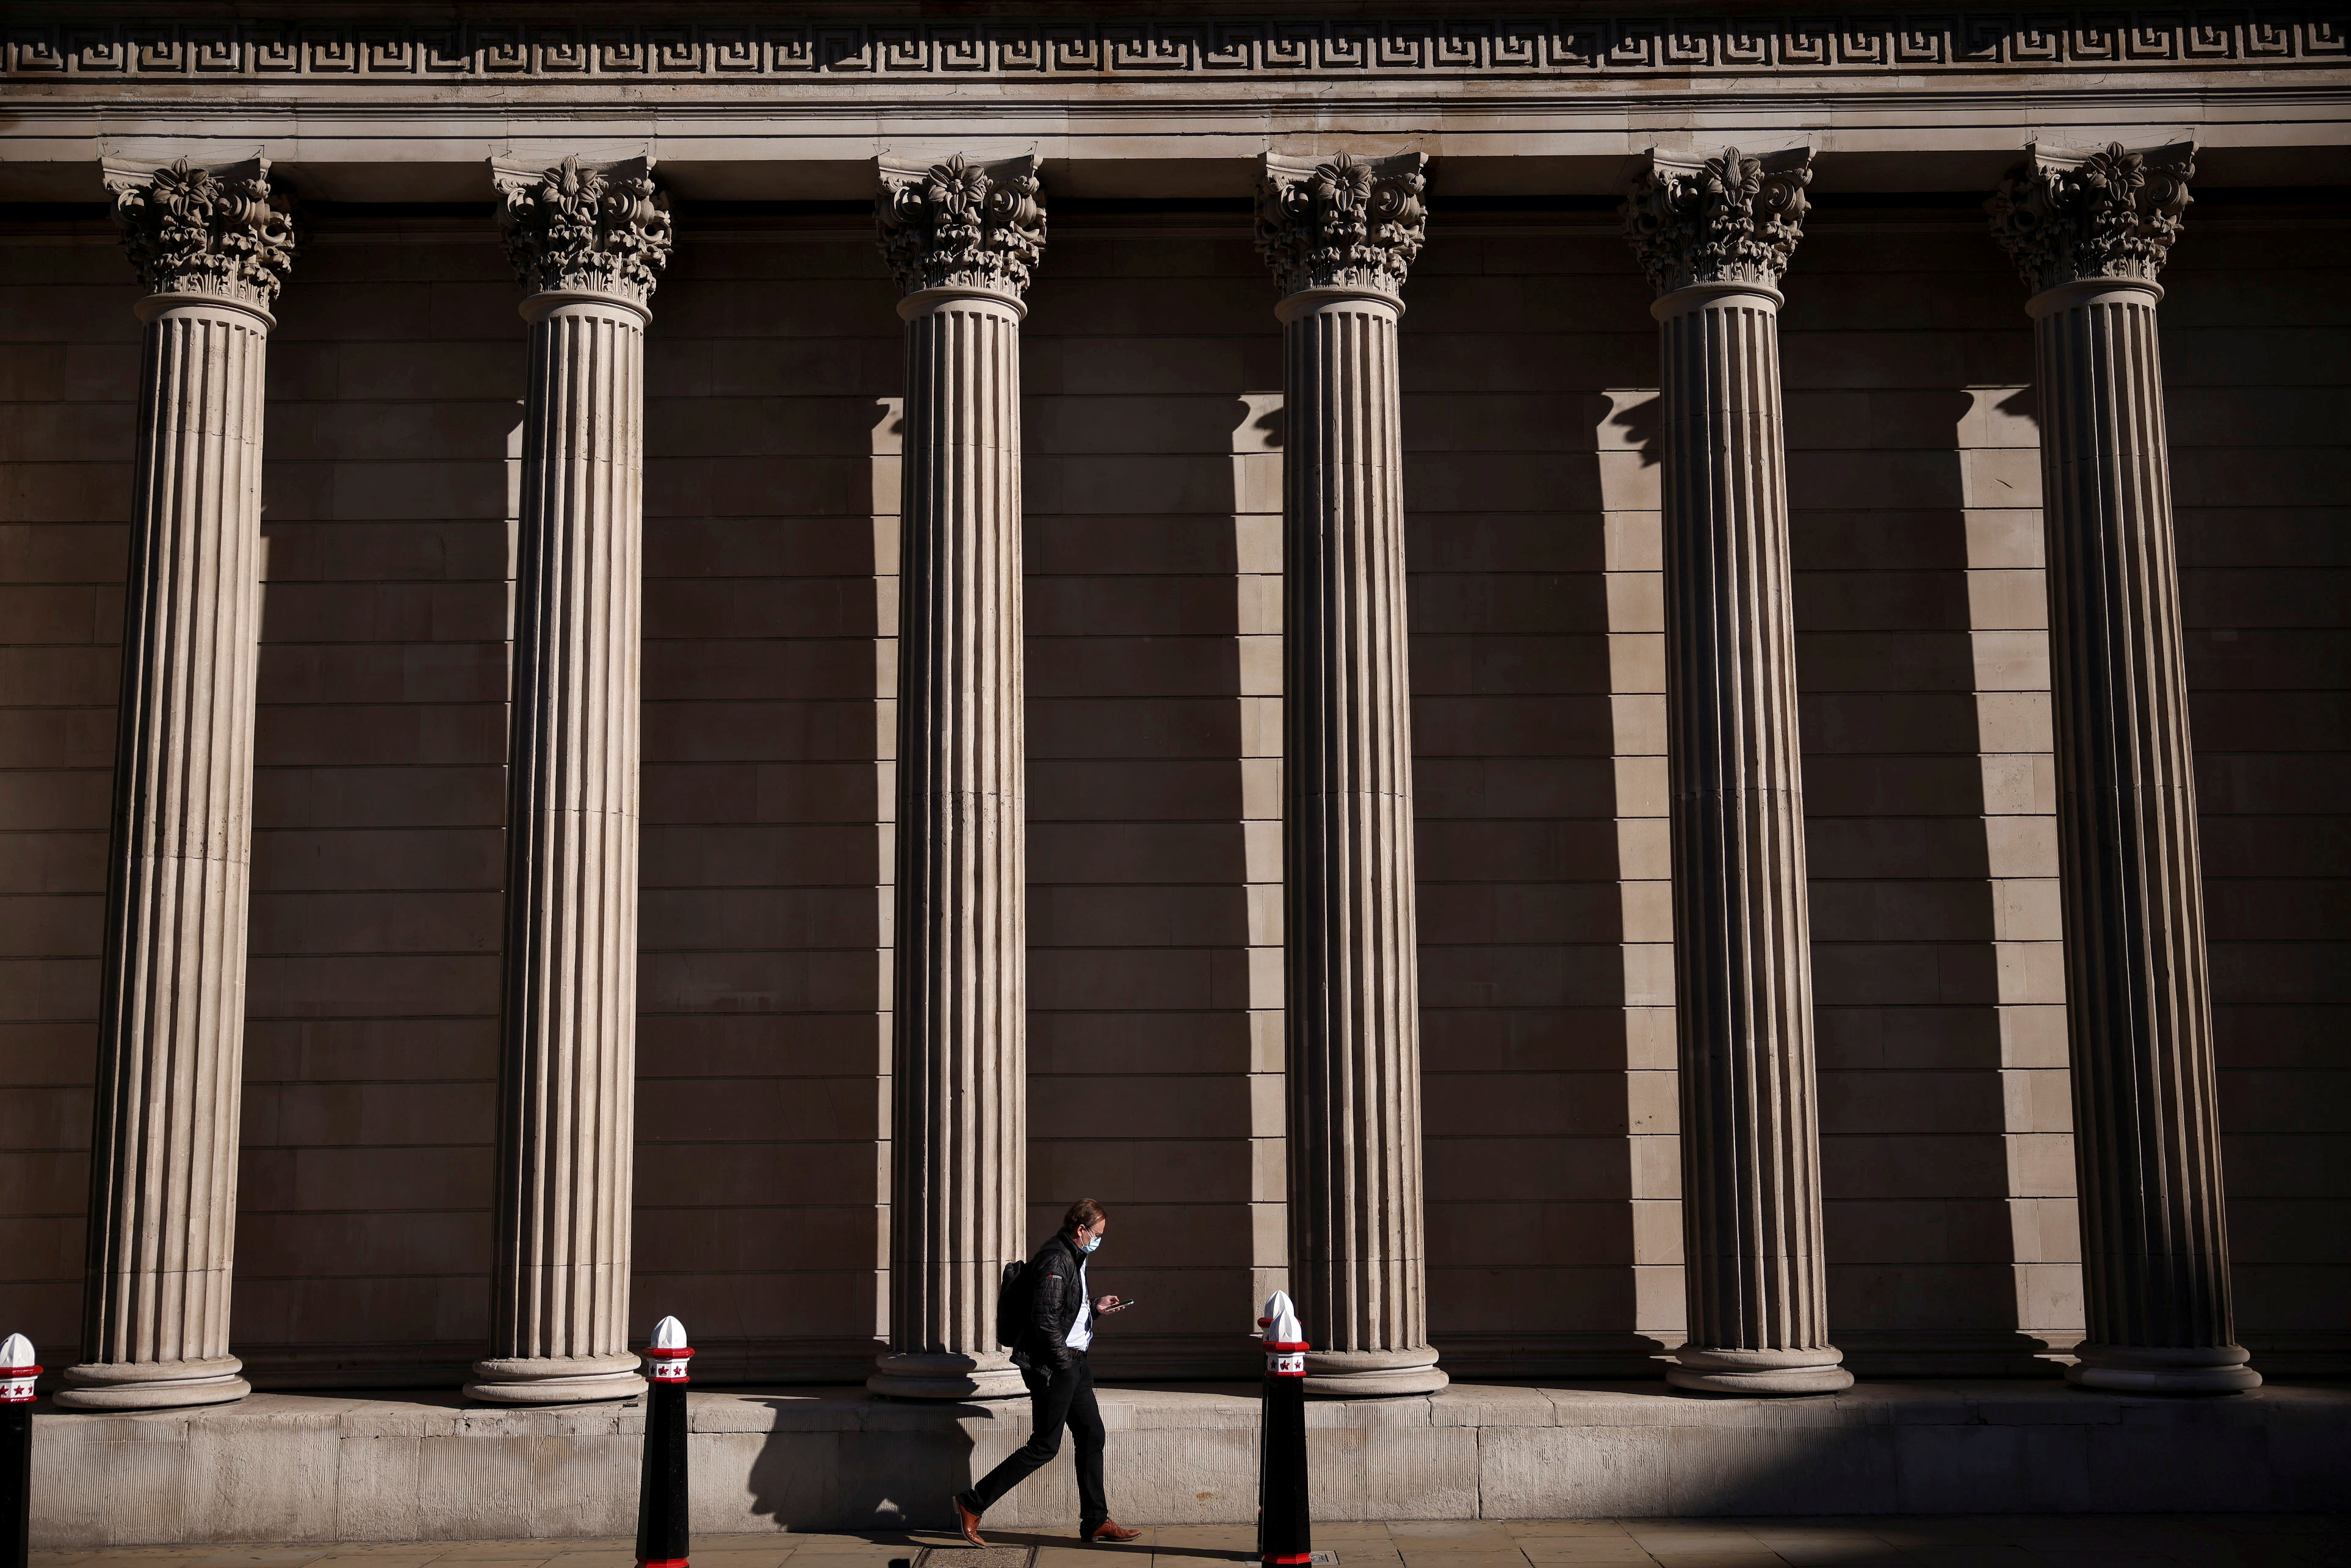 A person walks past the Bank of England during morning rush hour, amid the coronavirus disease (COVID-19) pandemic in London, Britain, July 29, 2021. REUTERS/Henry Nicholls/File Photo